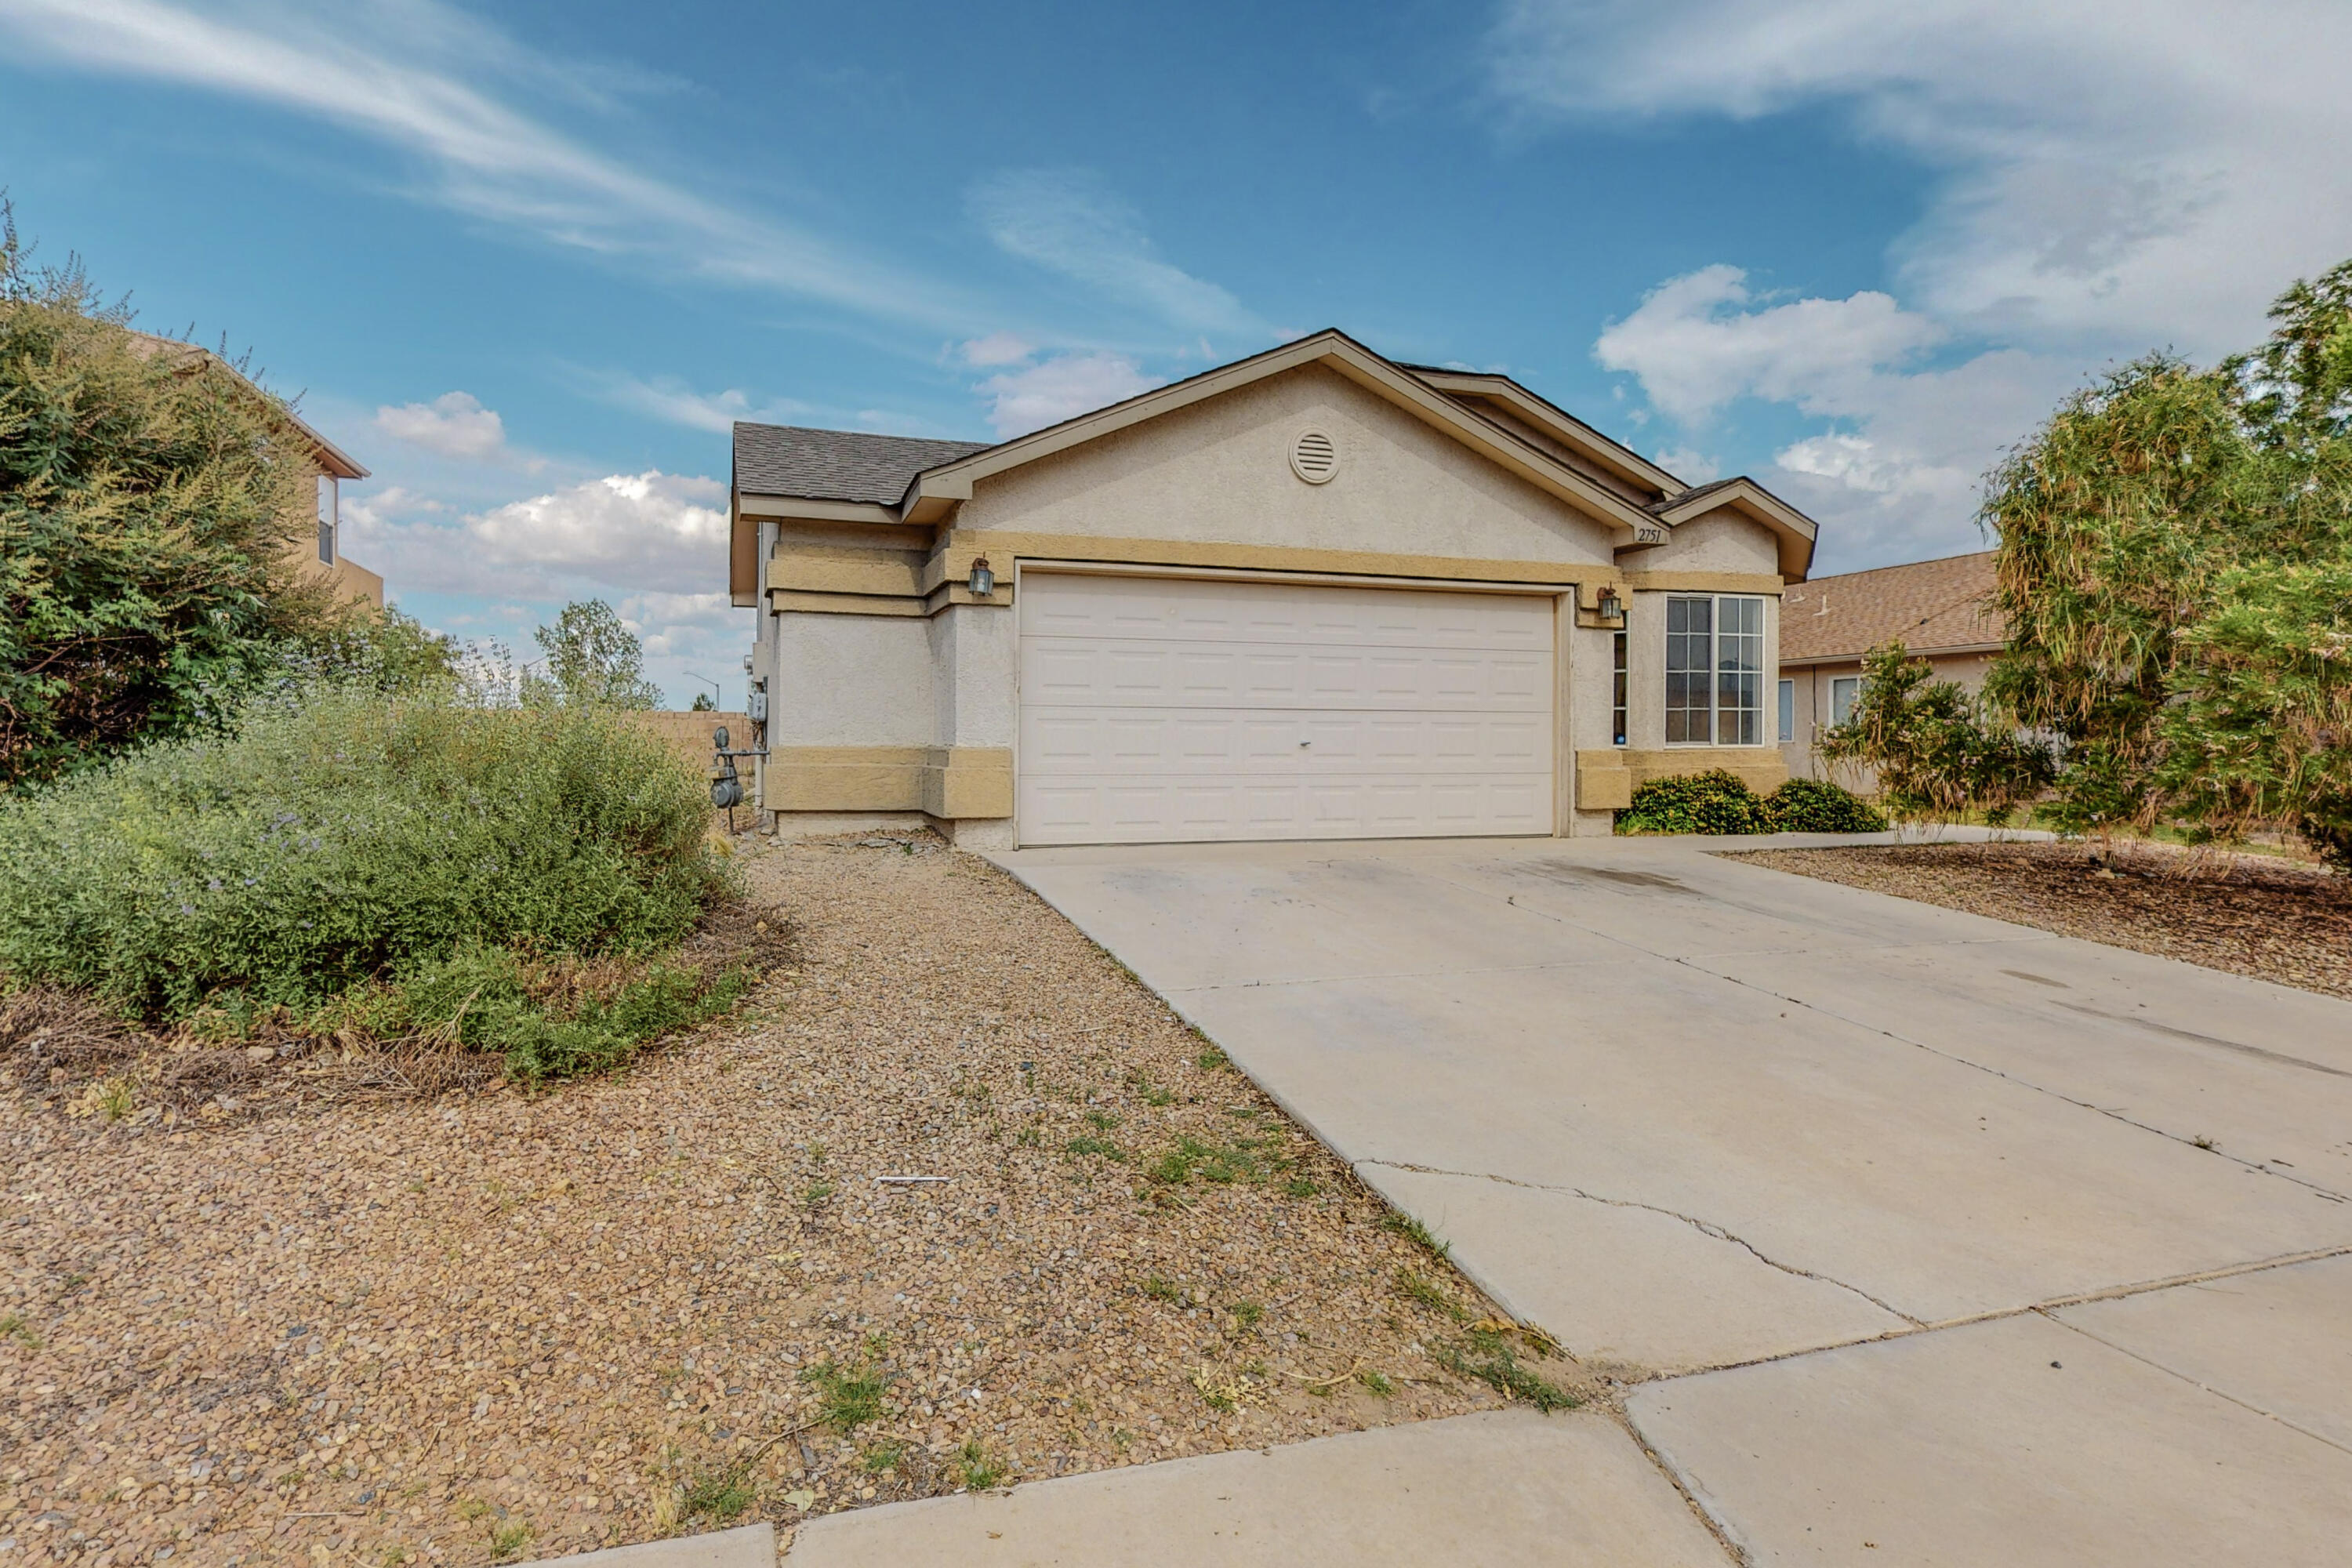 What a great opportunity in Los Lunas! This 3 bedroom 2 bath home is close access to shopping, I-25, and parks! With an open concept this home features a possible 4th bedroom or office space off the main living area. This home comes with solar panels! The covered patio is a perfect space for backyard BBQ's or enjoying the evenings! Call today to find out how to make this home yours!